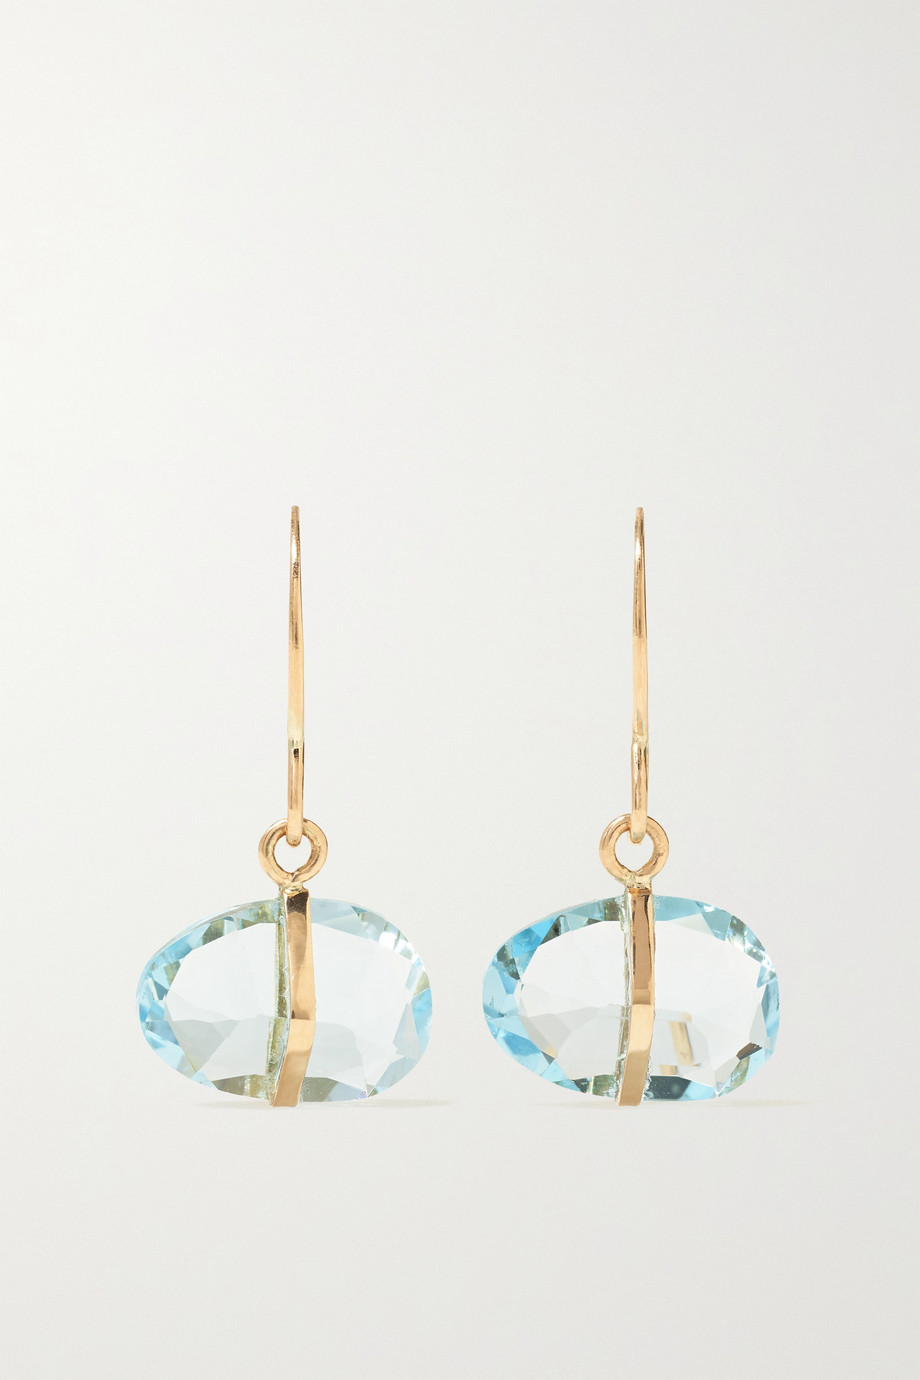 MELISSA JOY MANNING 14-karat recycled gold topaz earrings